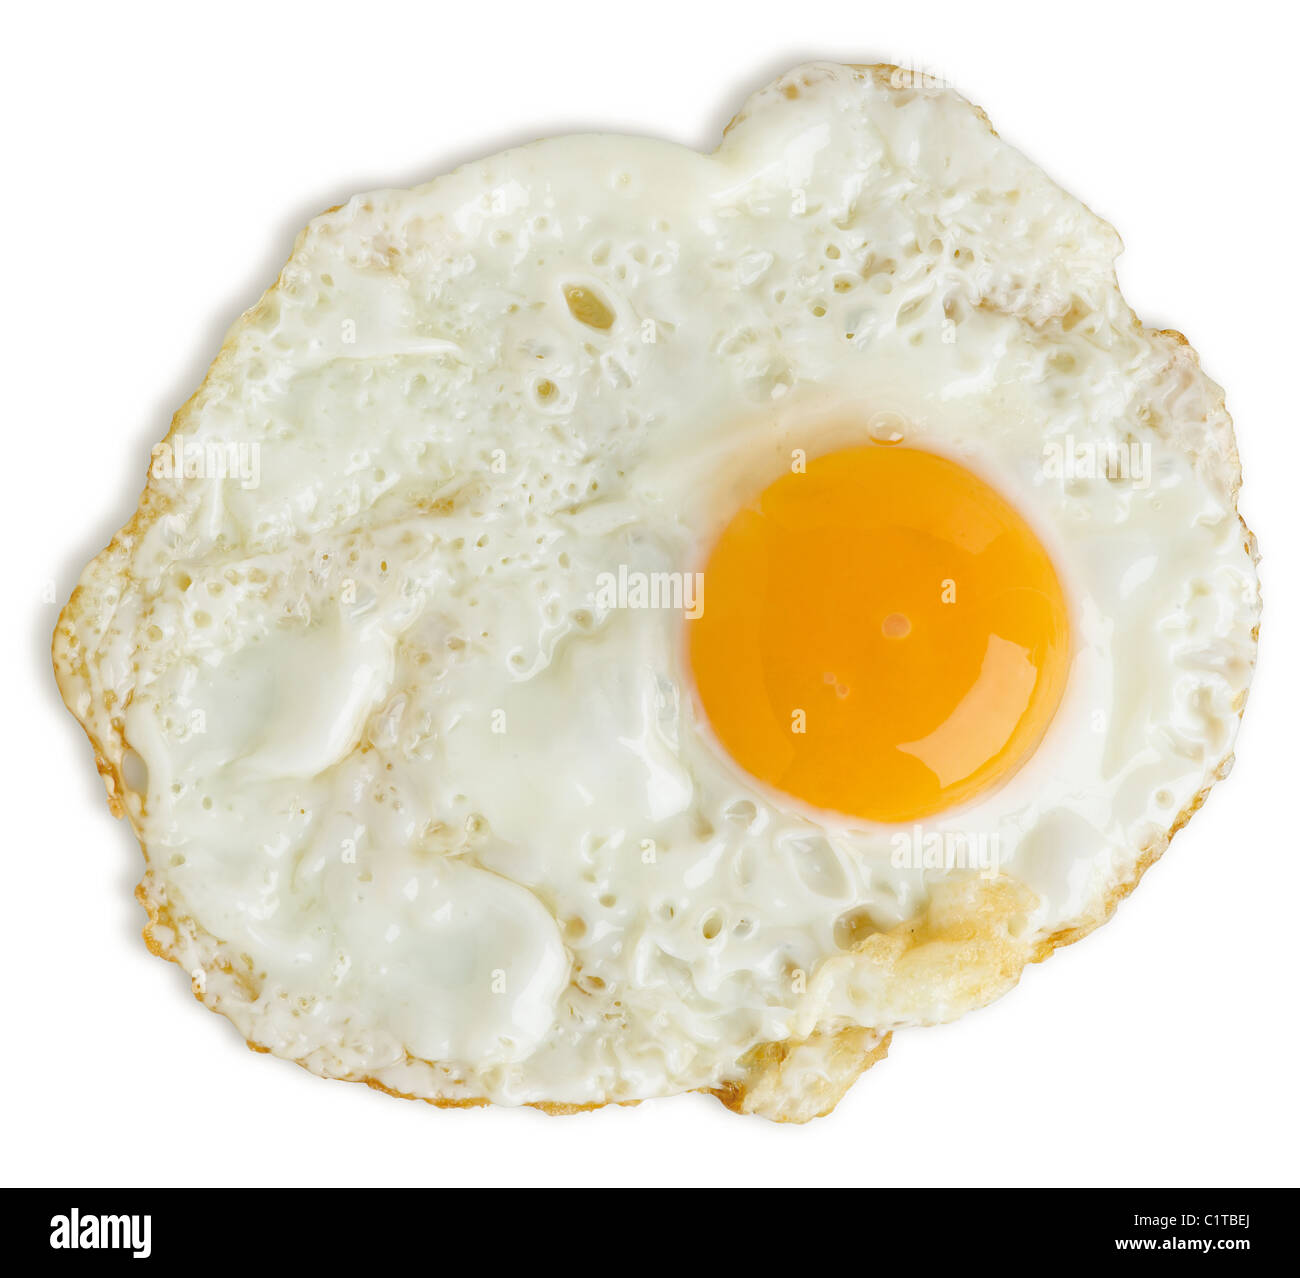 a badly fried egg isolated on white with a clipping path - Stock Image